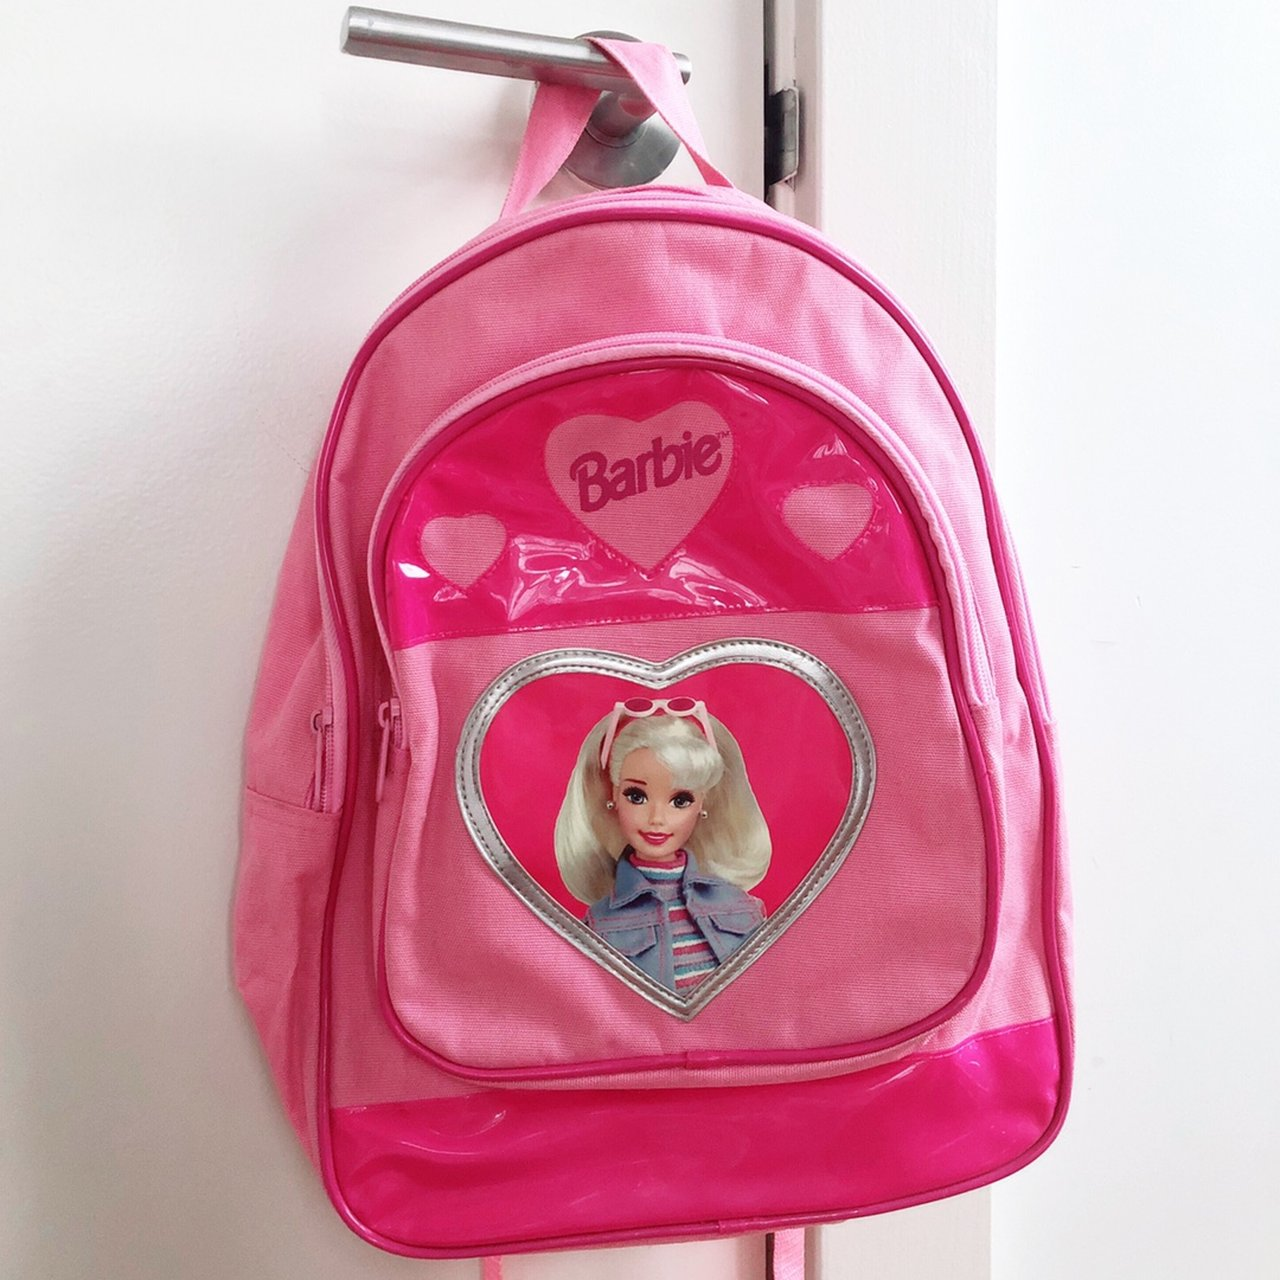 Vintage 90 s Barbie Backpack! I love this backpack so much 279242fed27df